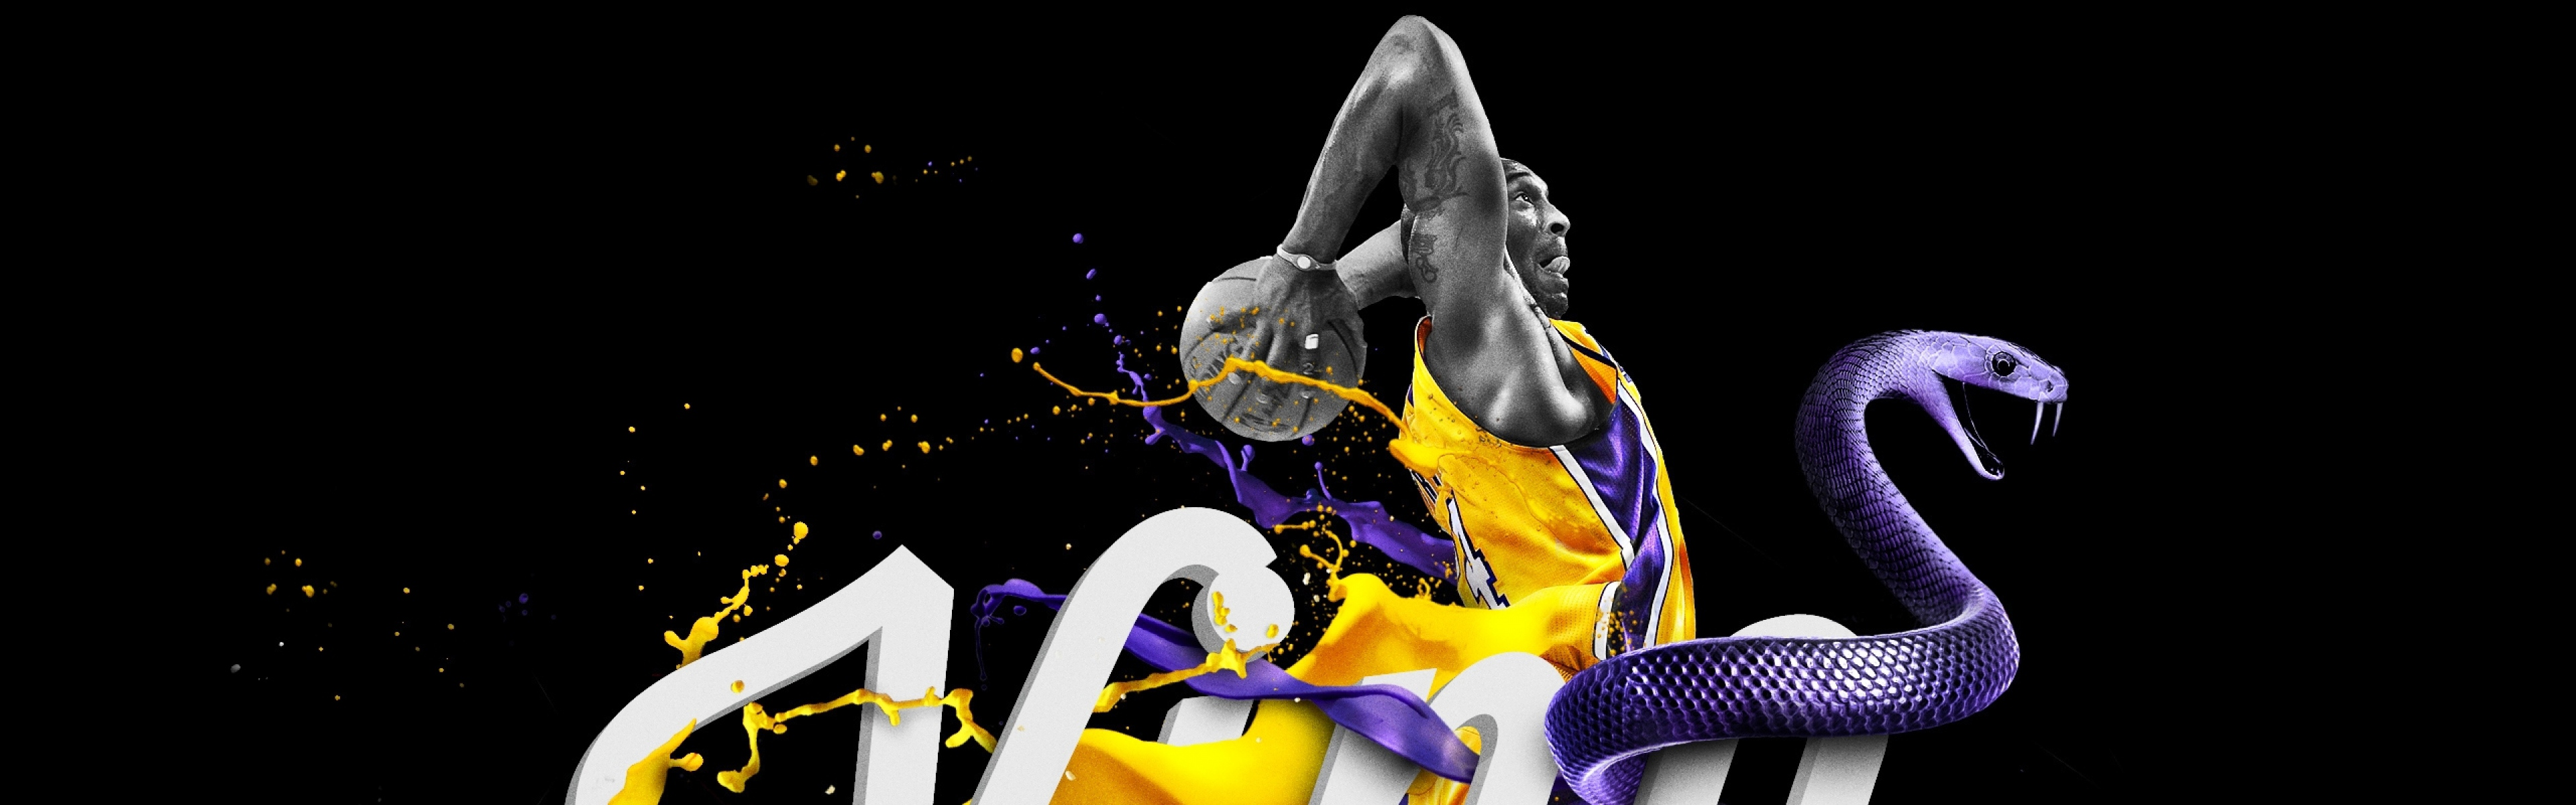 Kobe Bryant Logo Wallpaper High Definition Is Cool Wallpapers